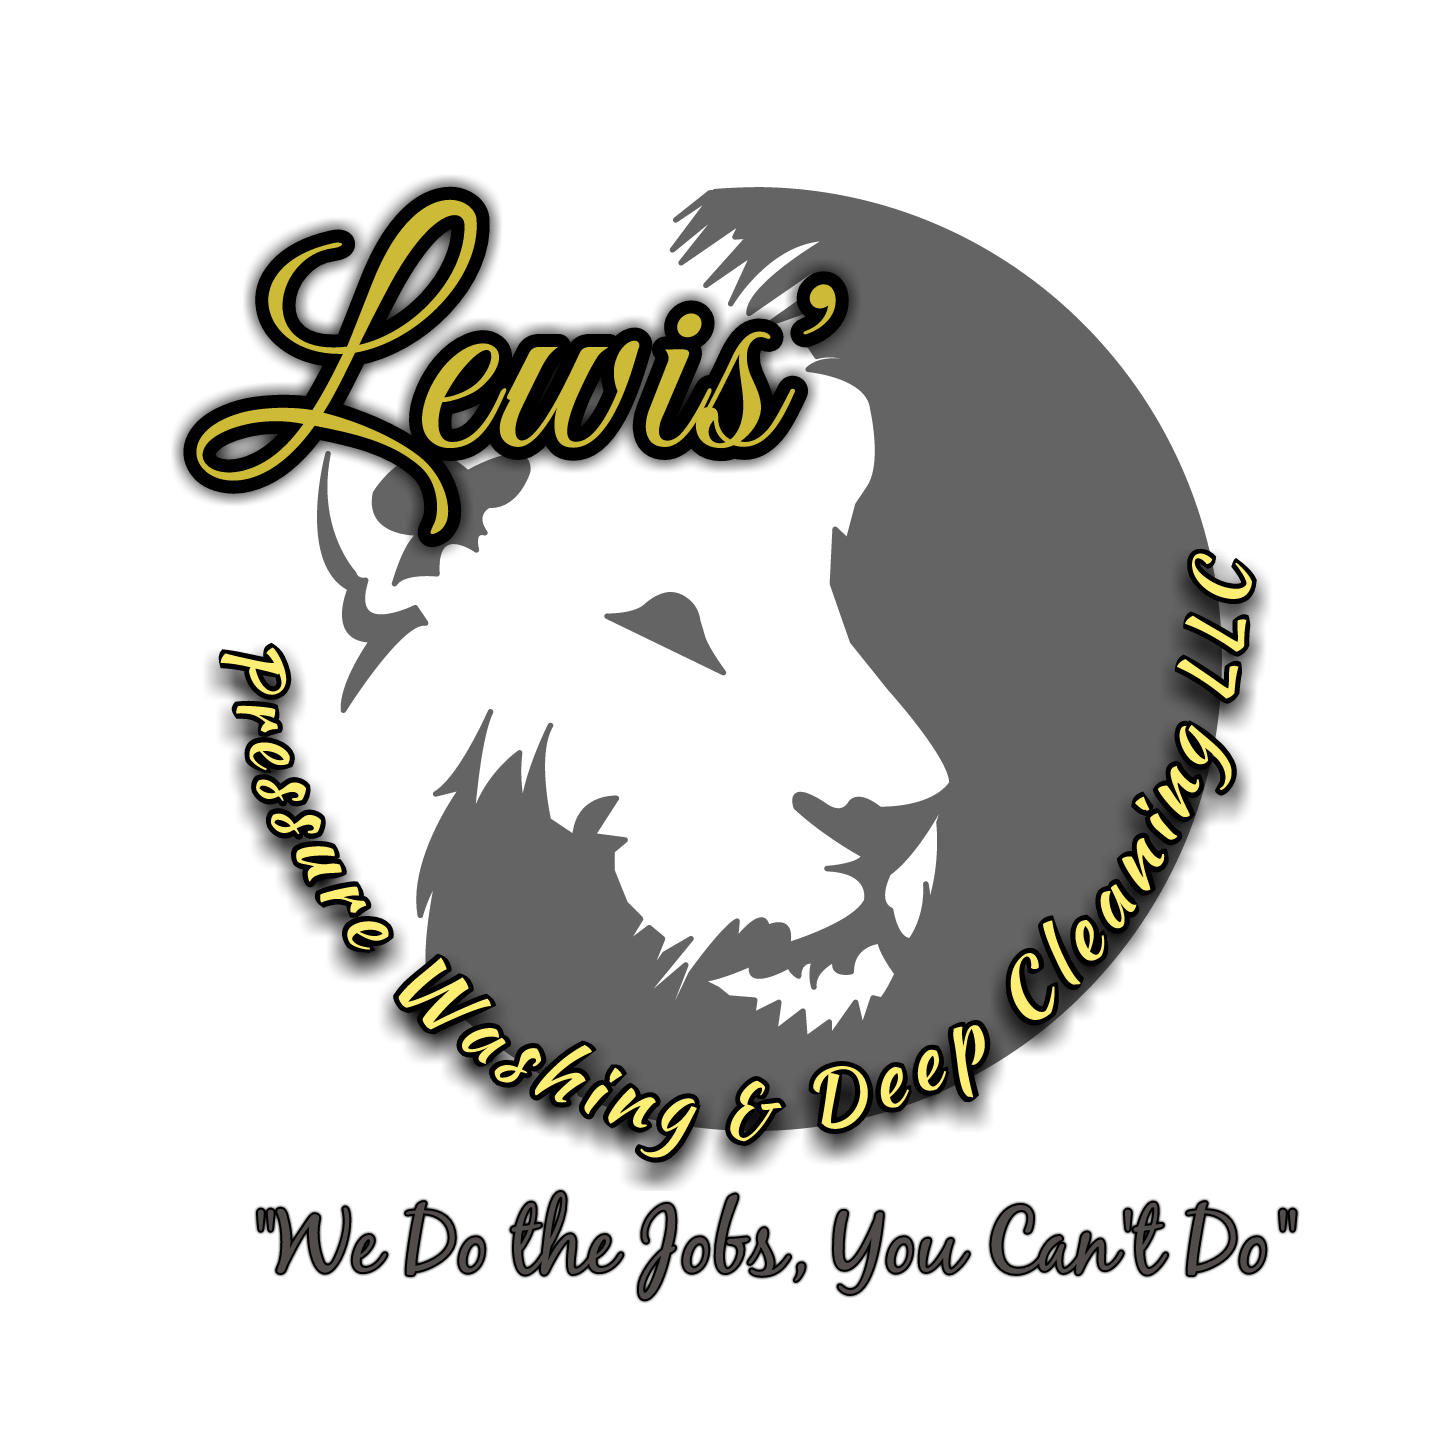 Lewis' Pressure Washing and Deep Cleaning LLC